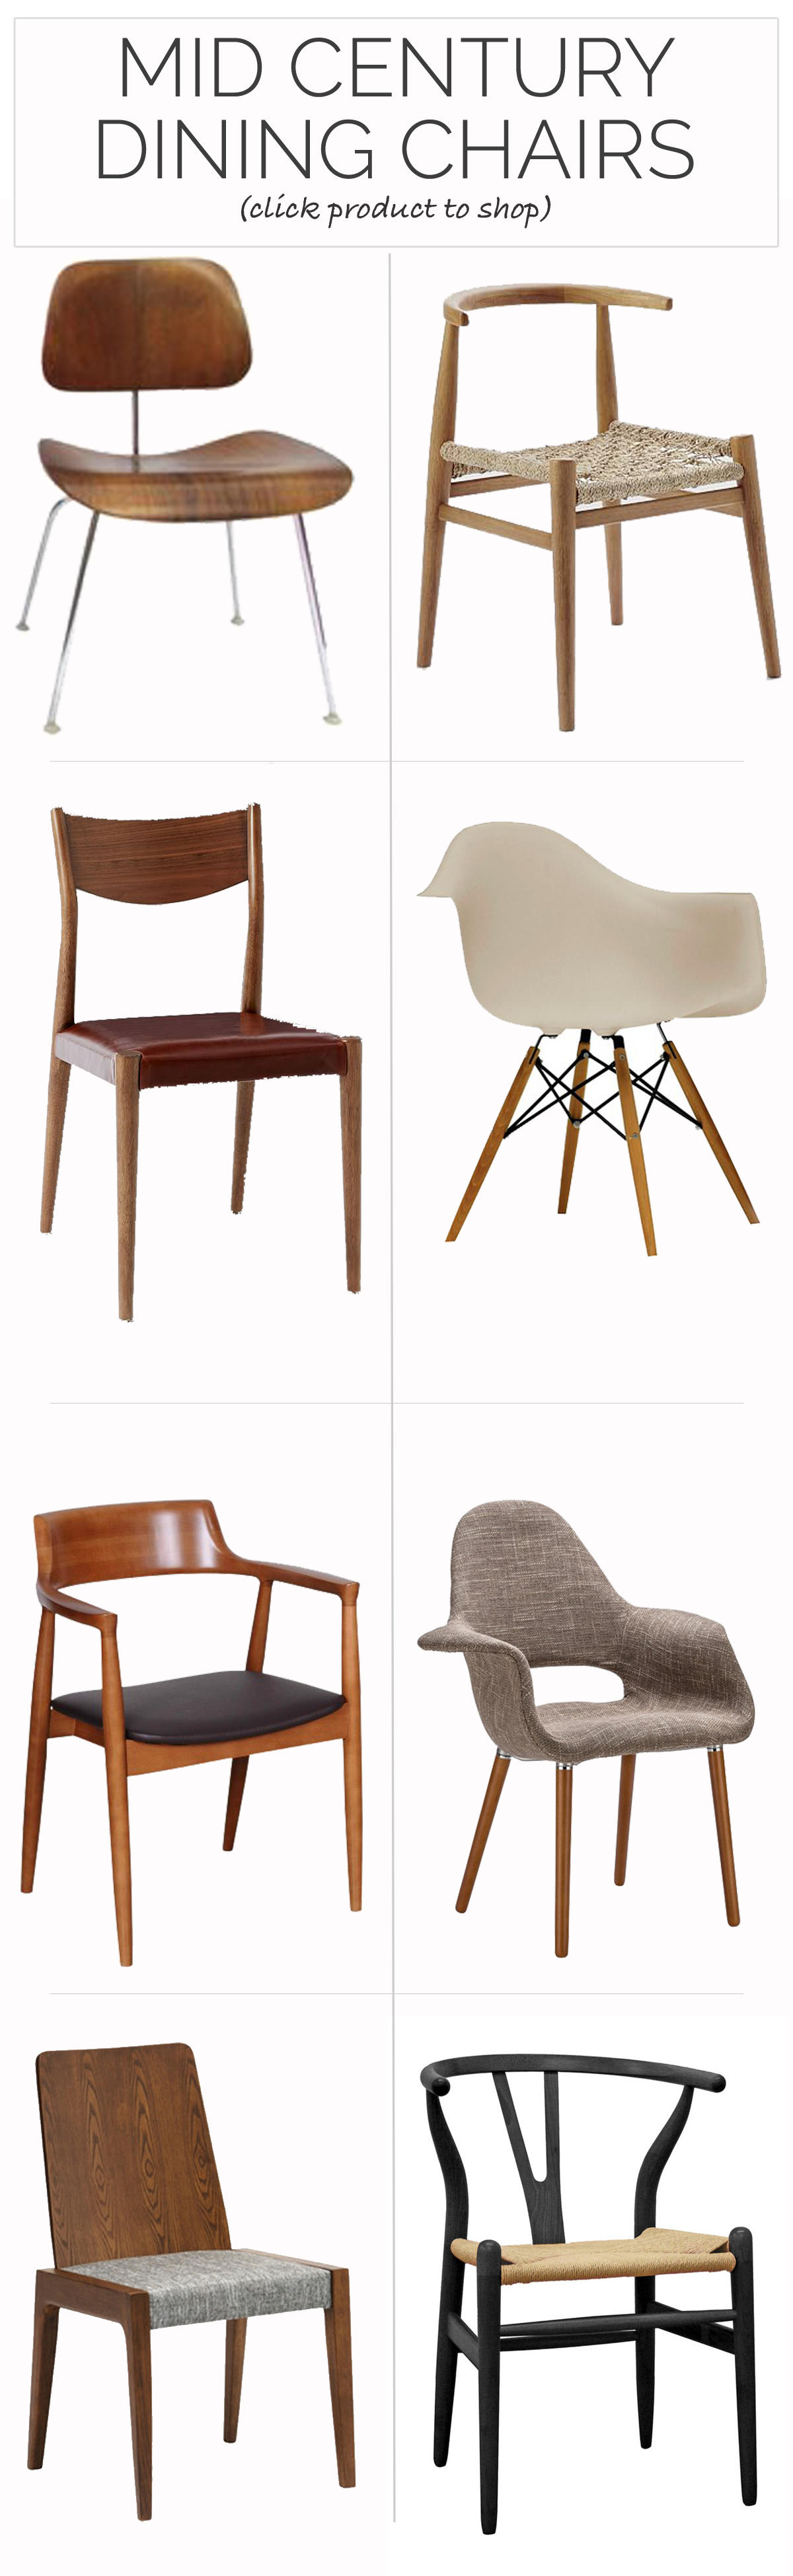 the best mid century dining chairs st hle kaufen stuhl und kaufen. Black Bedroom Furniture Sets. Home Design Ideas